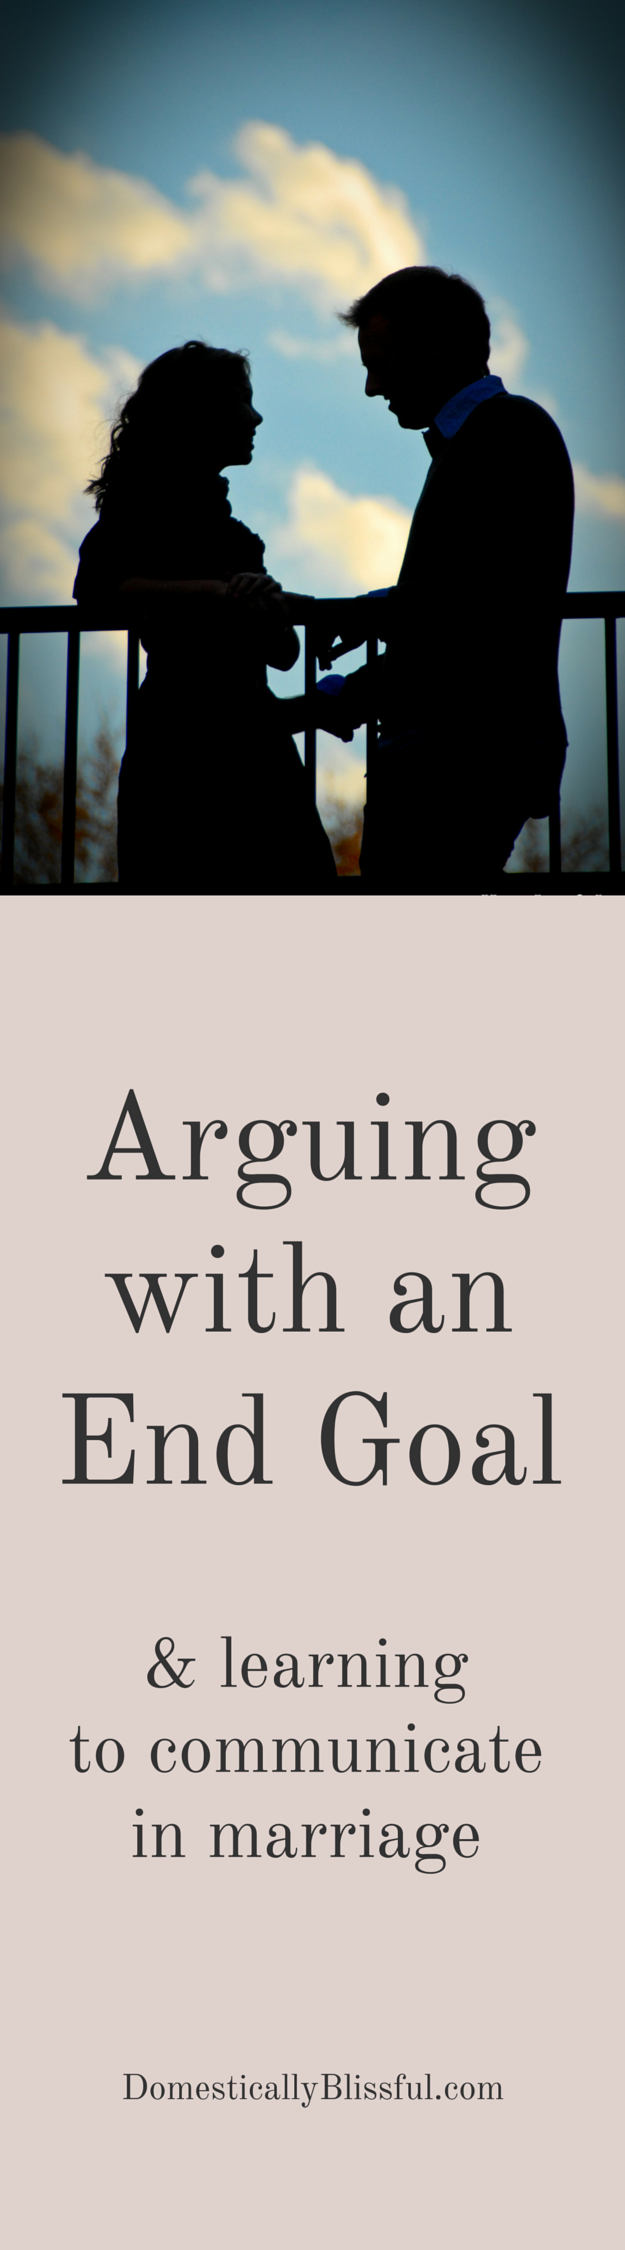 Arguing with an End Goal & learning to communicate in marriage